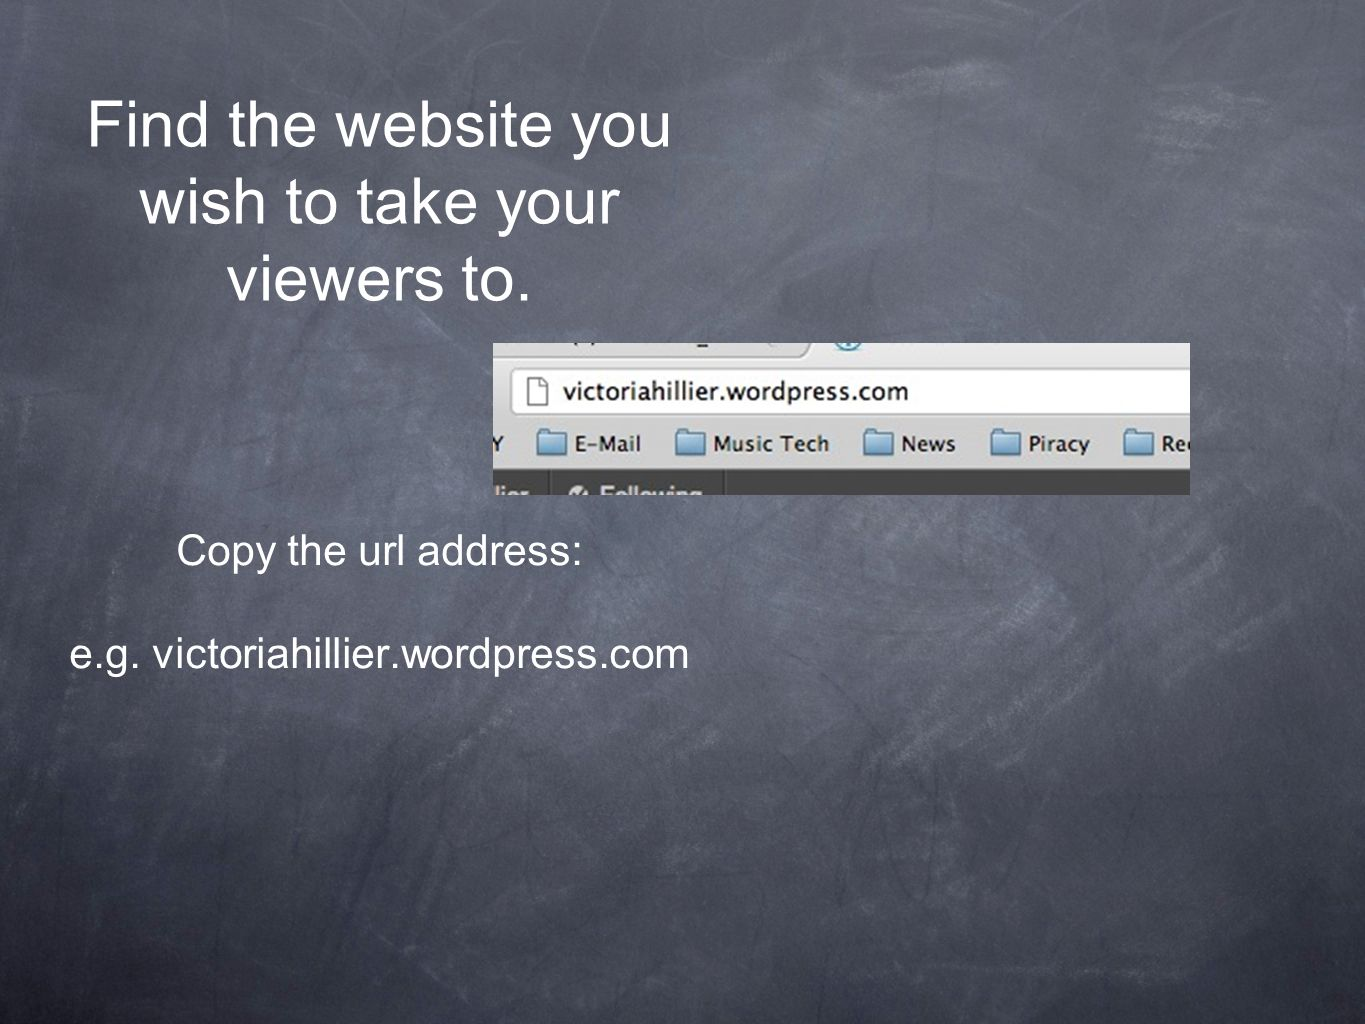 Find the website you wish to take your viewers to.